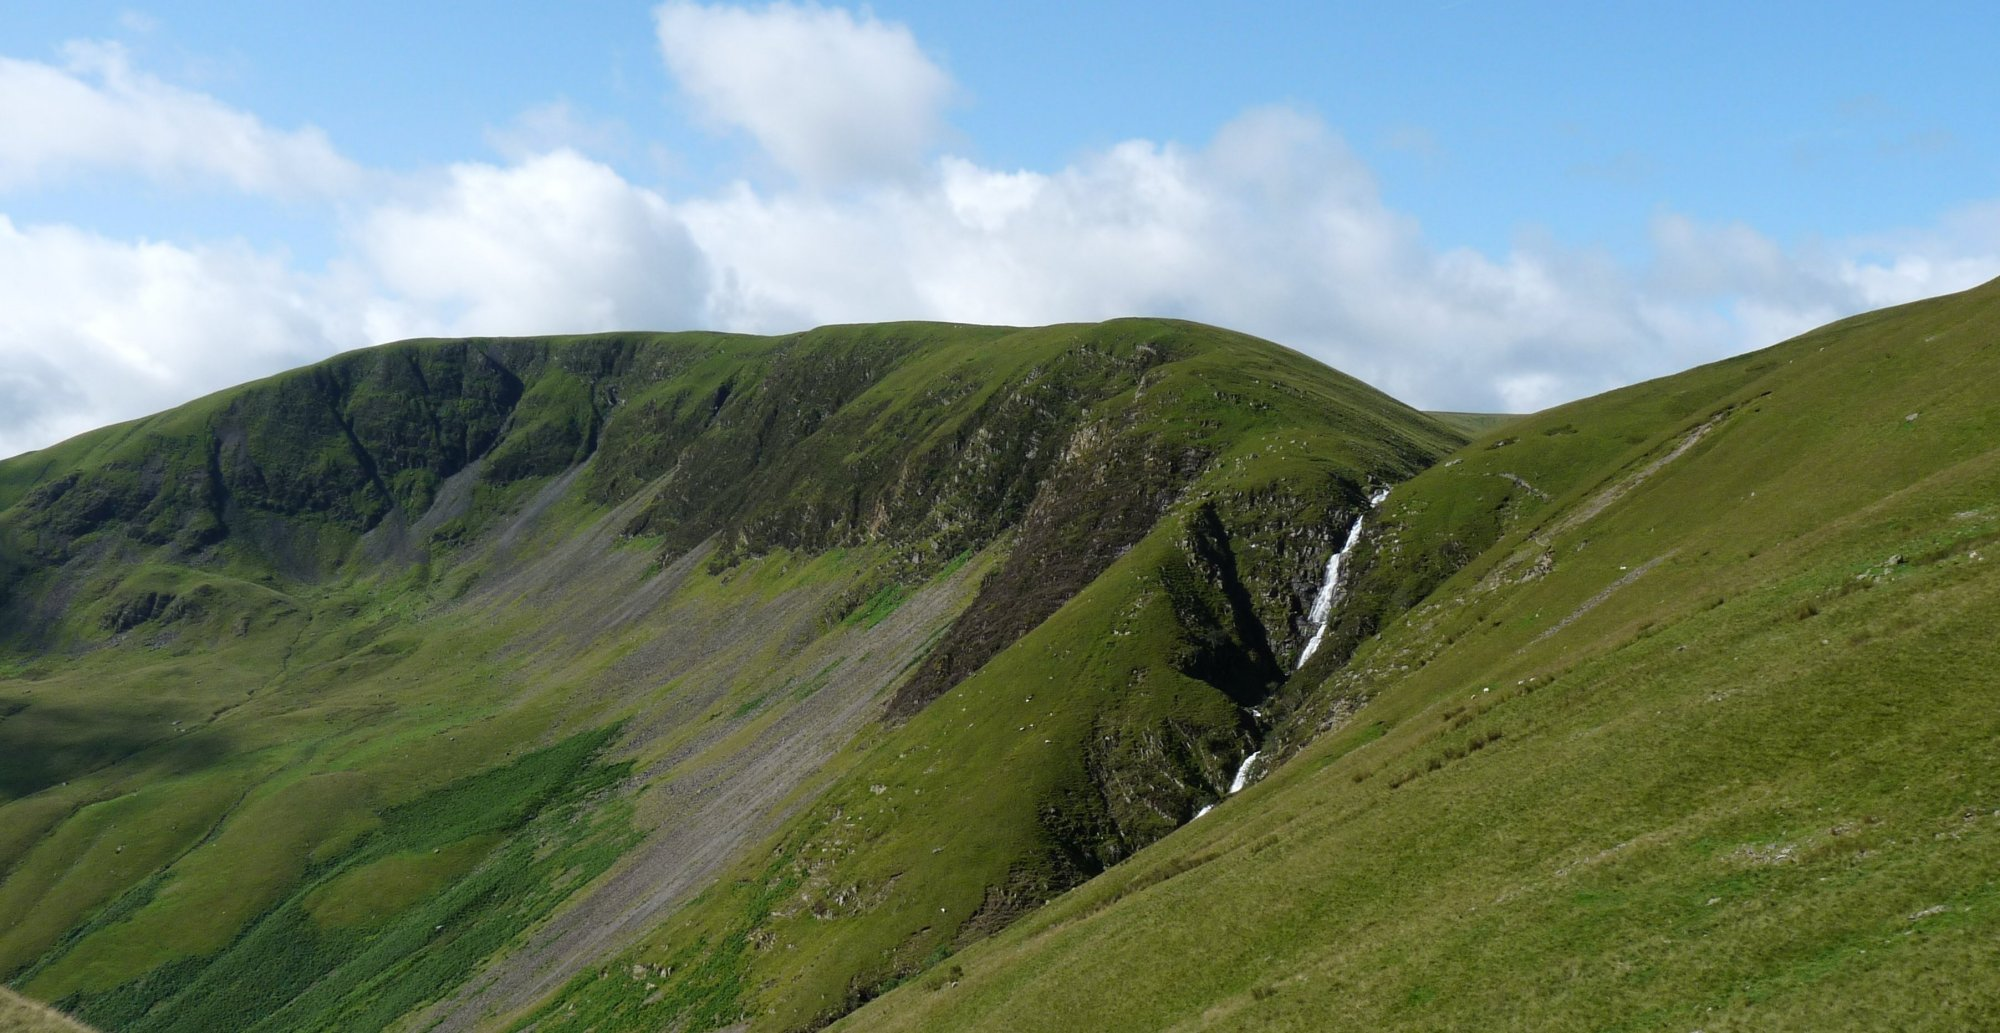 The hugely impressive Cautley Spout